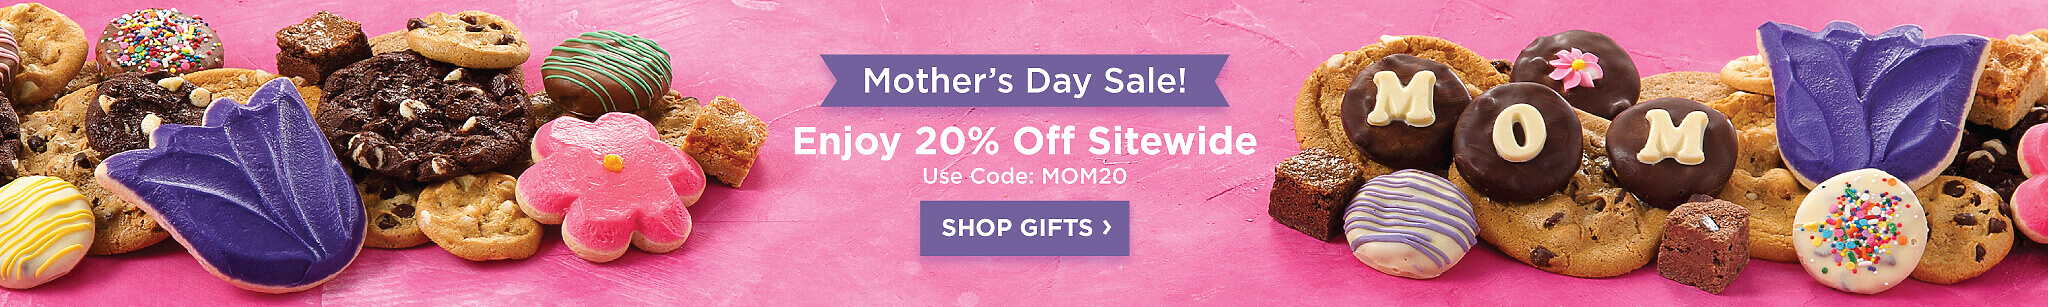 Mother's Day Sale! Enjoy 20% Off Sitewide with code: MOM20. Shop Gifts for Mom